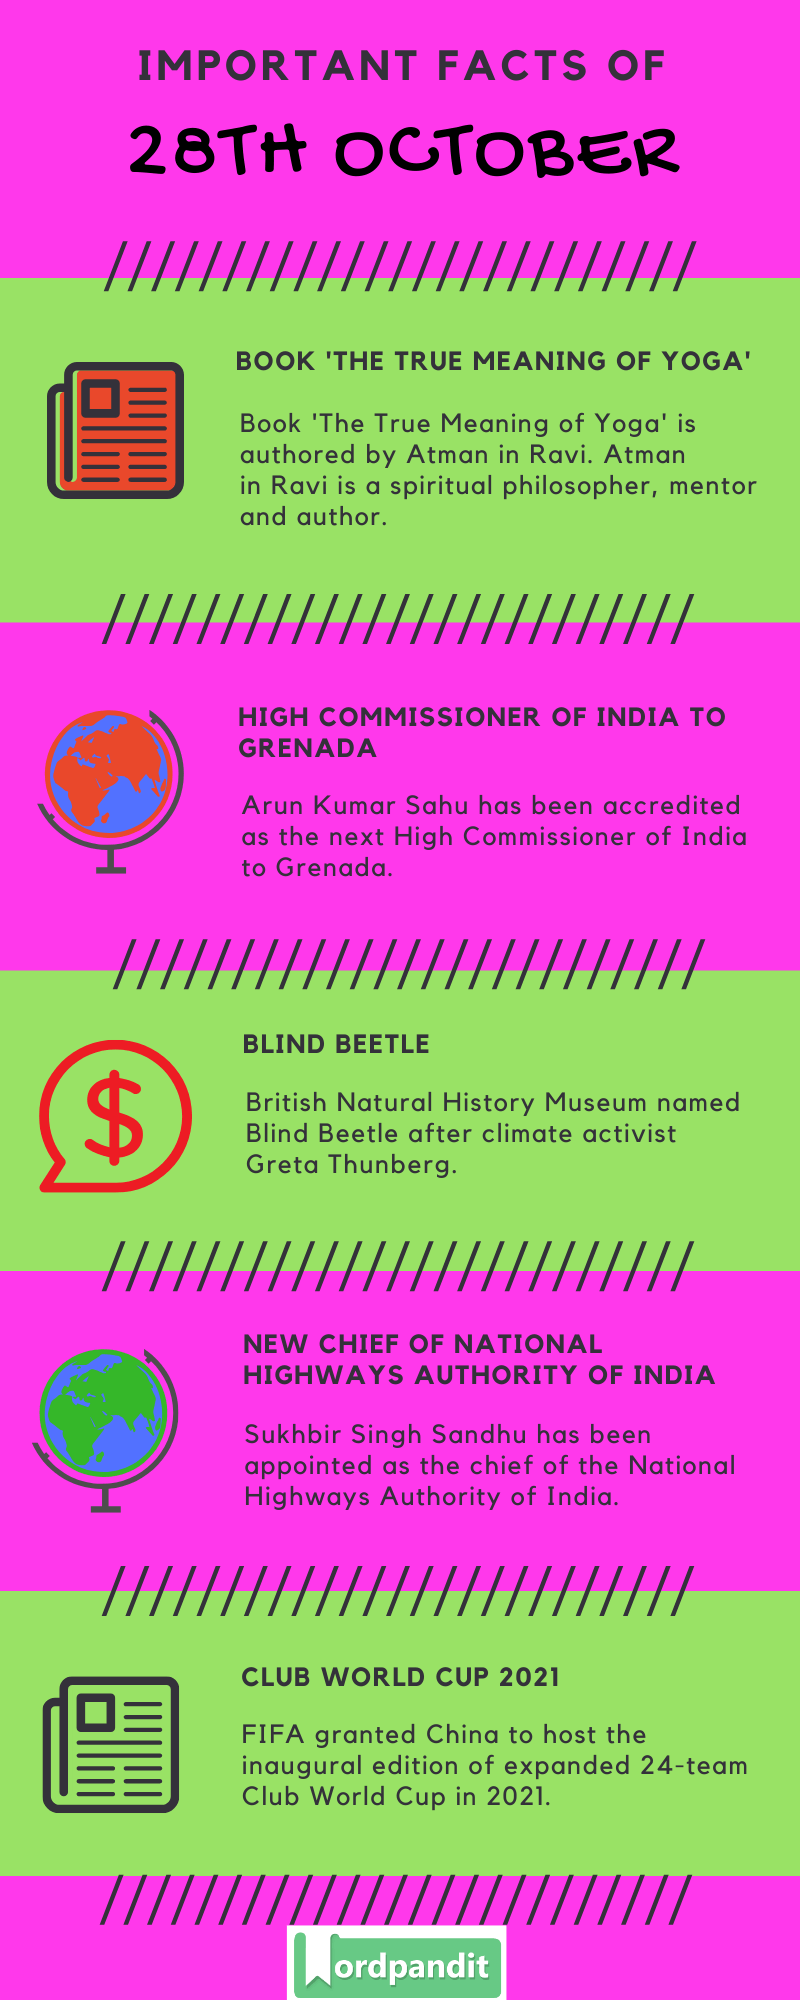 Daily Current Affairs 28 October 2019 Current Affairs Quiz 28 October 2019 Current Affairs Infographic